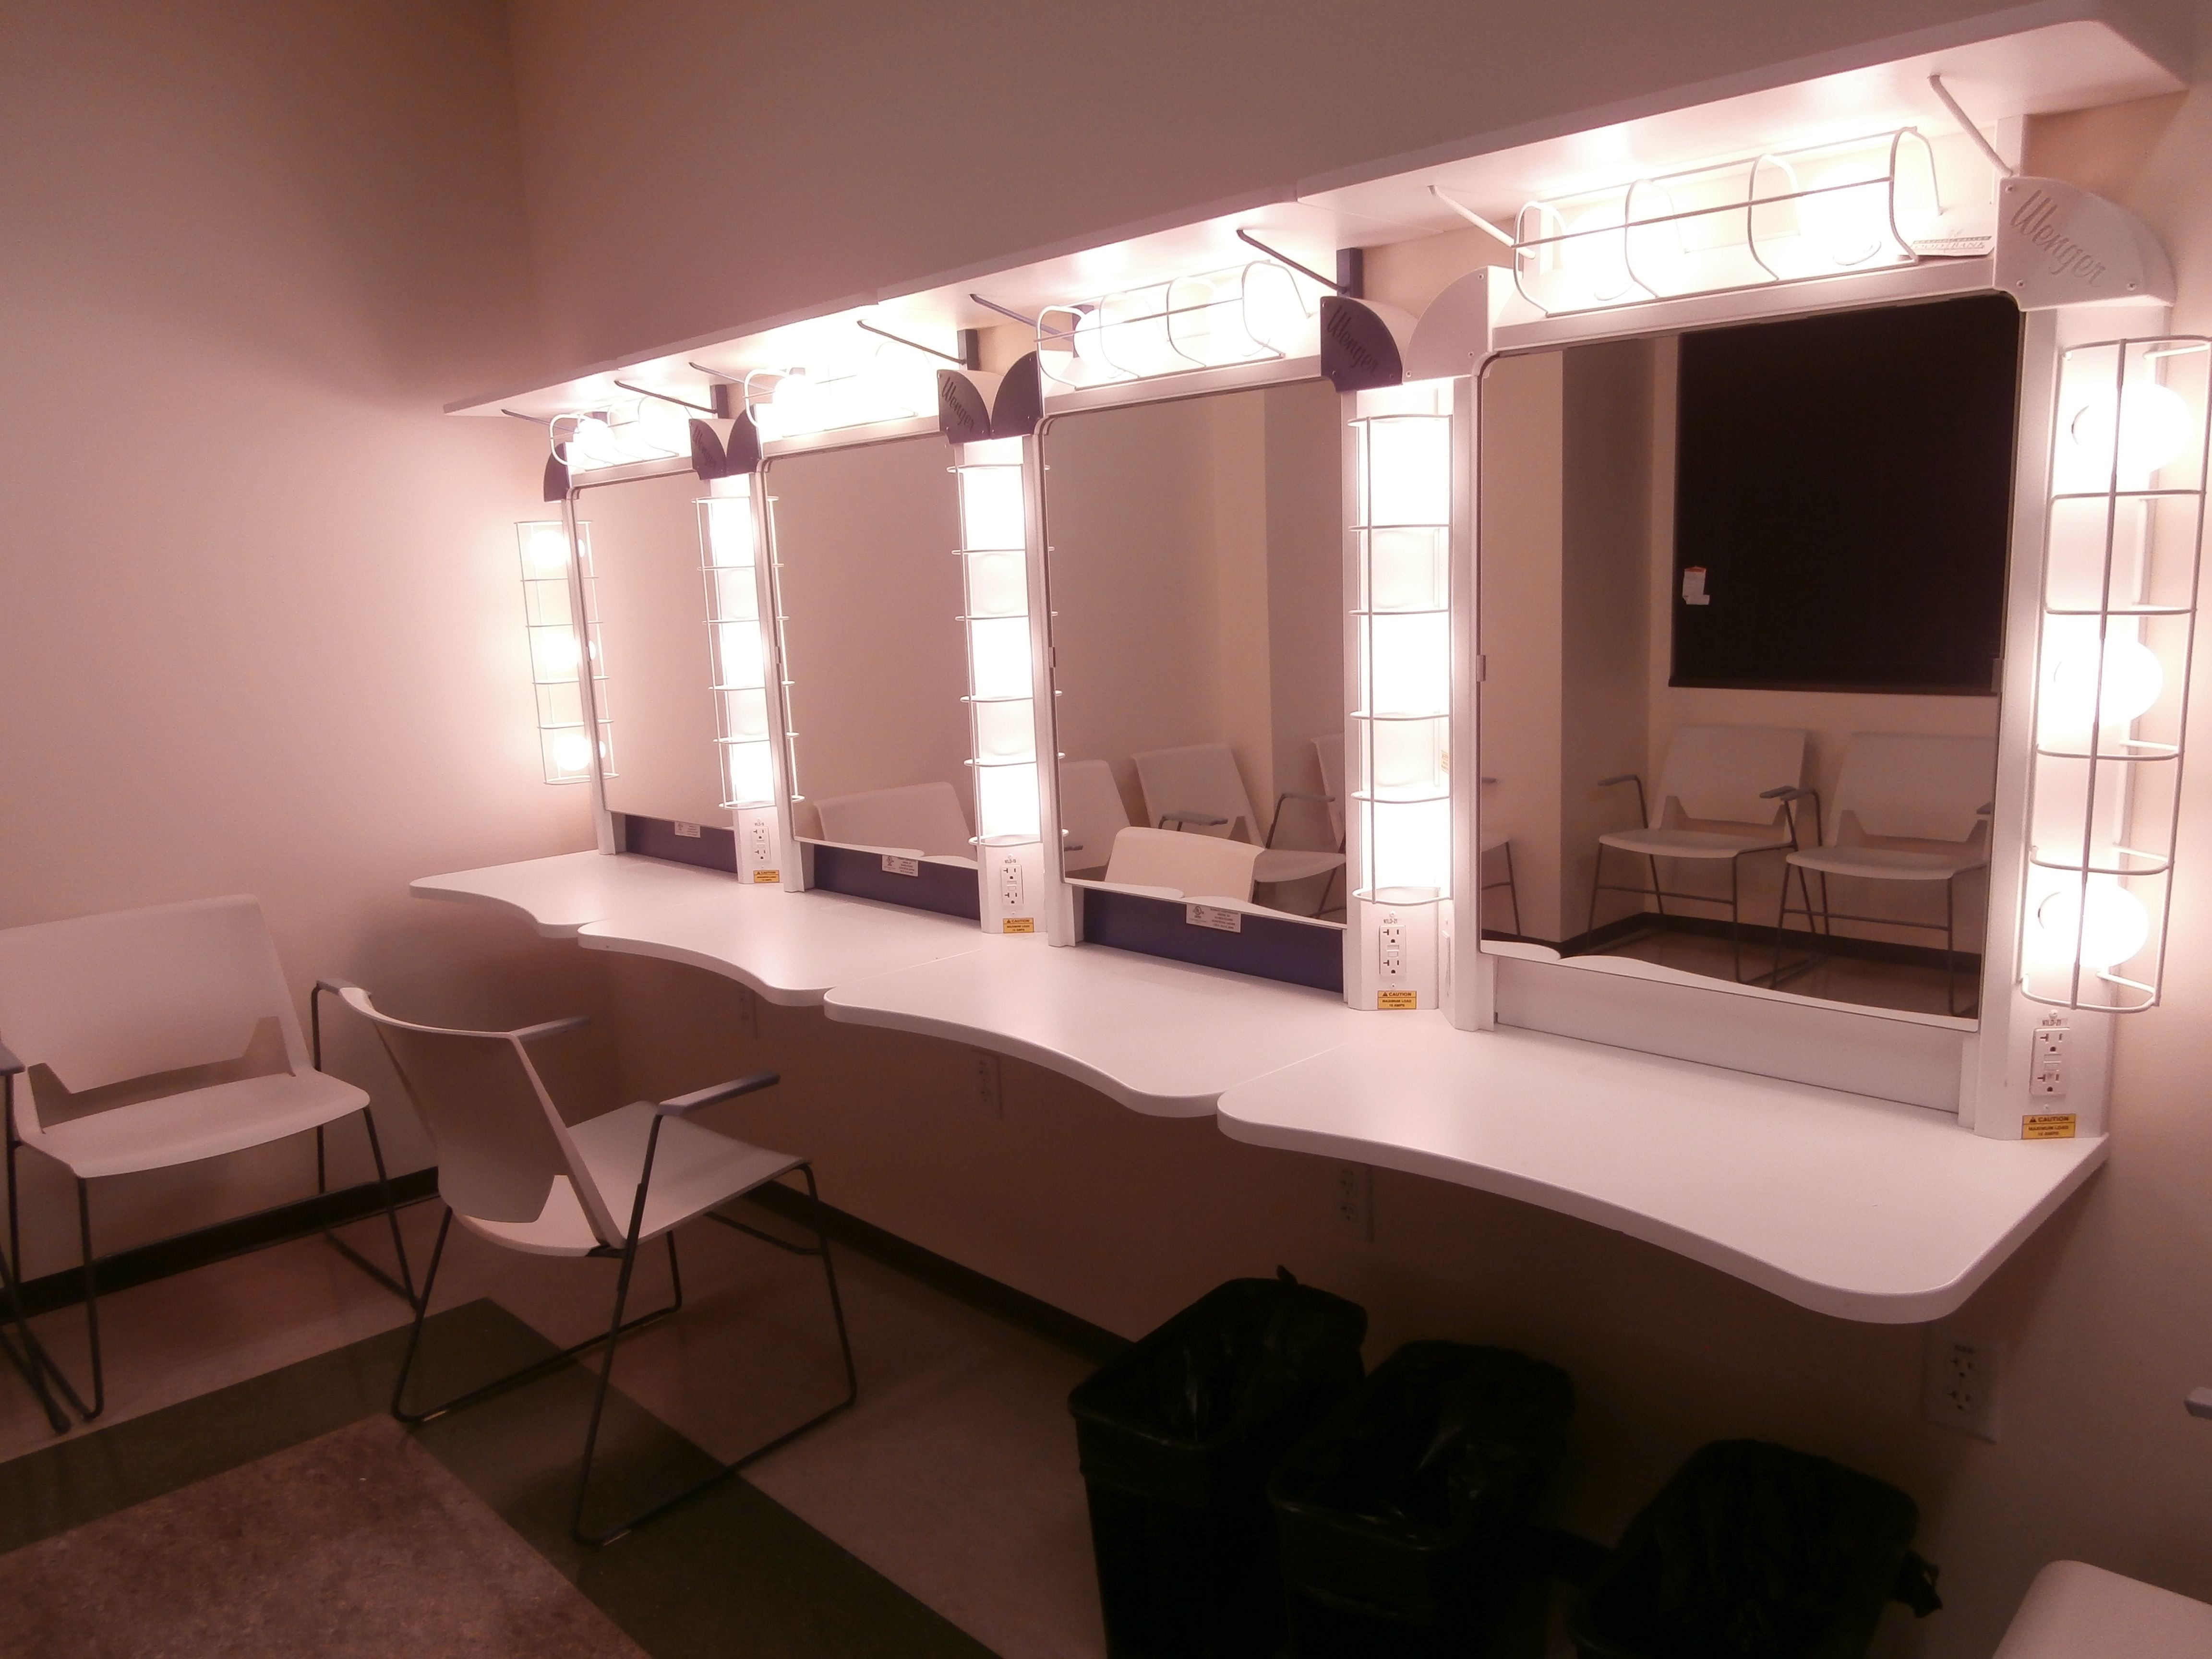 Backstage dressing room mirror viewing gallery mk box backstage dressing room mirror viewing gallery amipublicfo Images